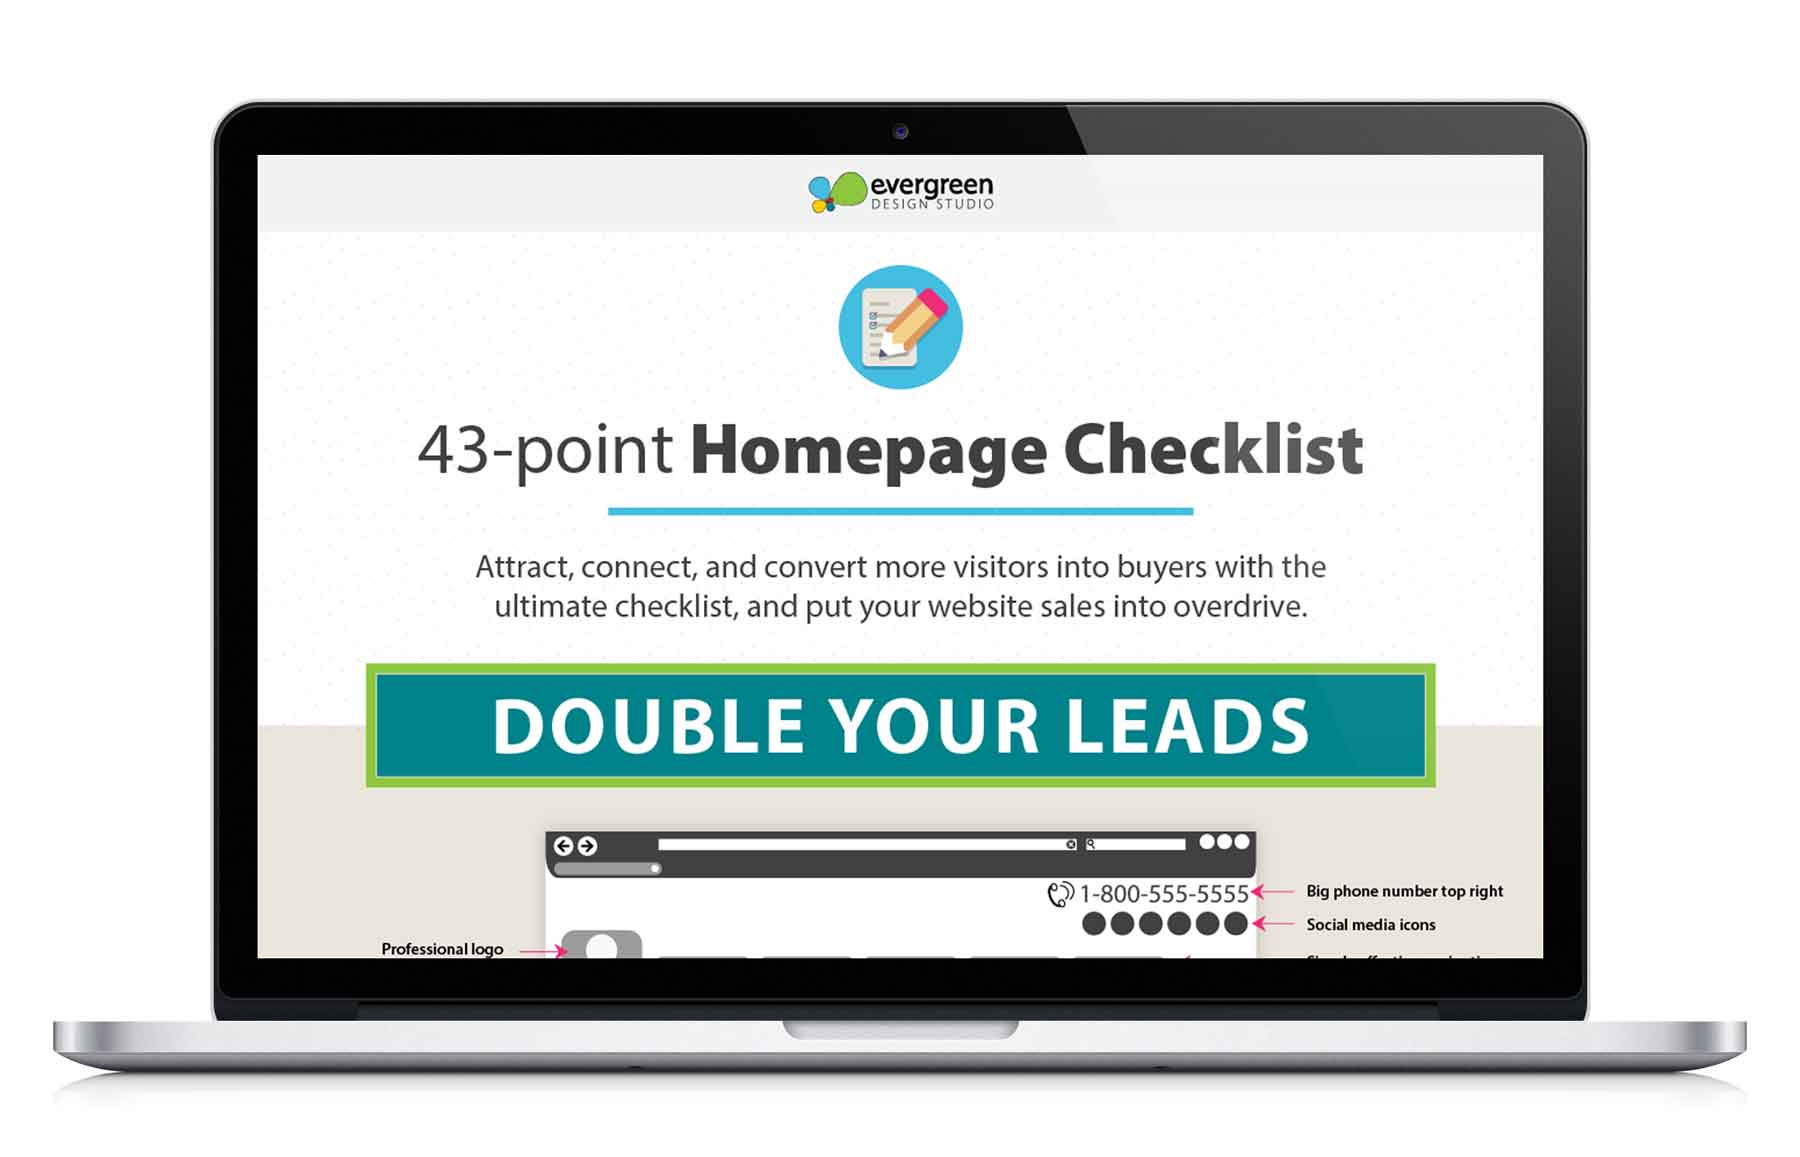 6 Tips to Double Your Leads and Make Your Homepage Work for You